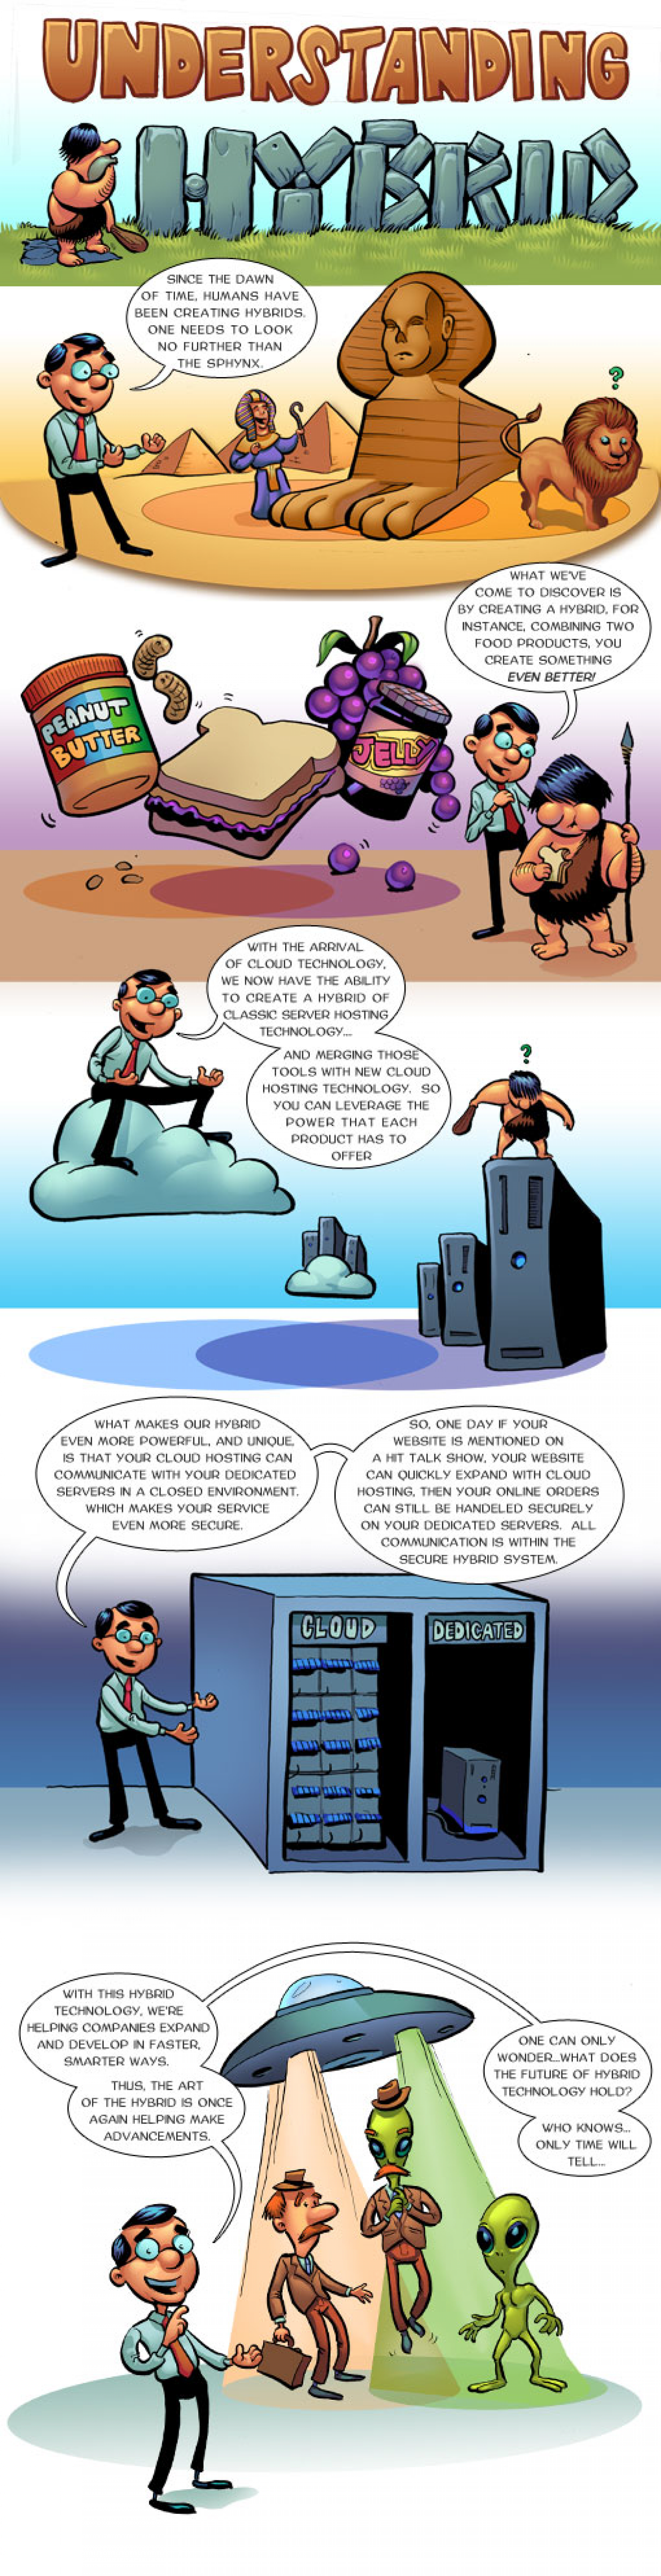 Understanding Hybrid Cloud Computing Infographic